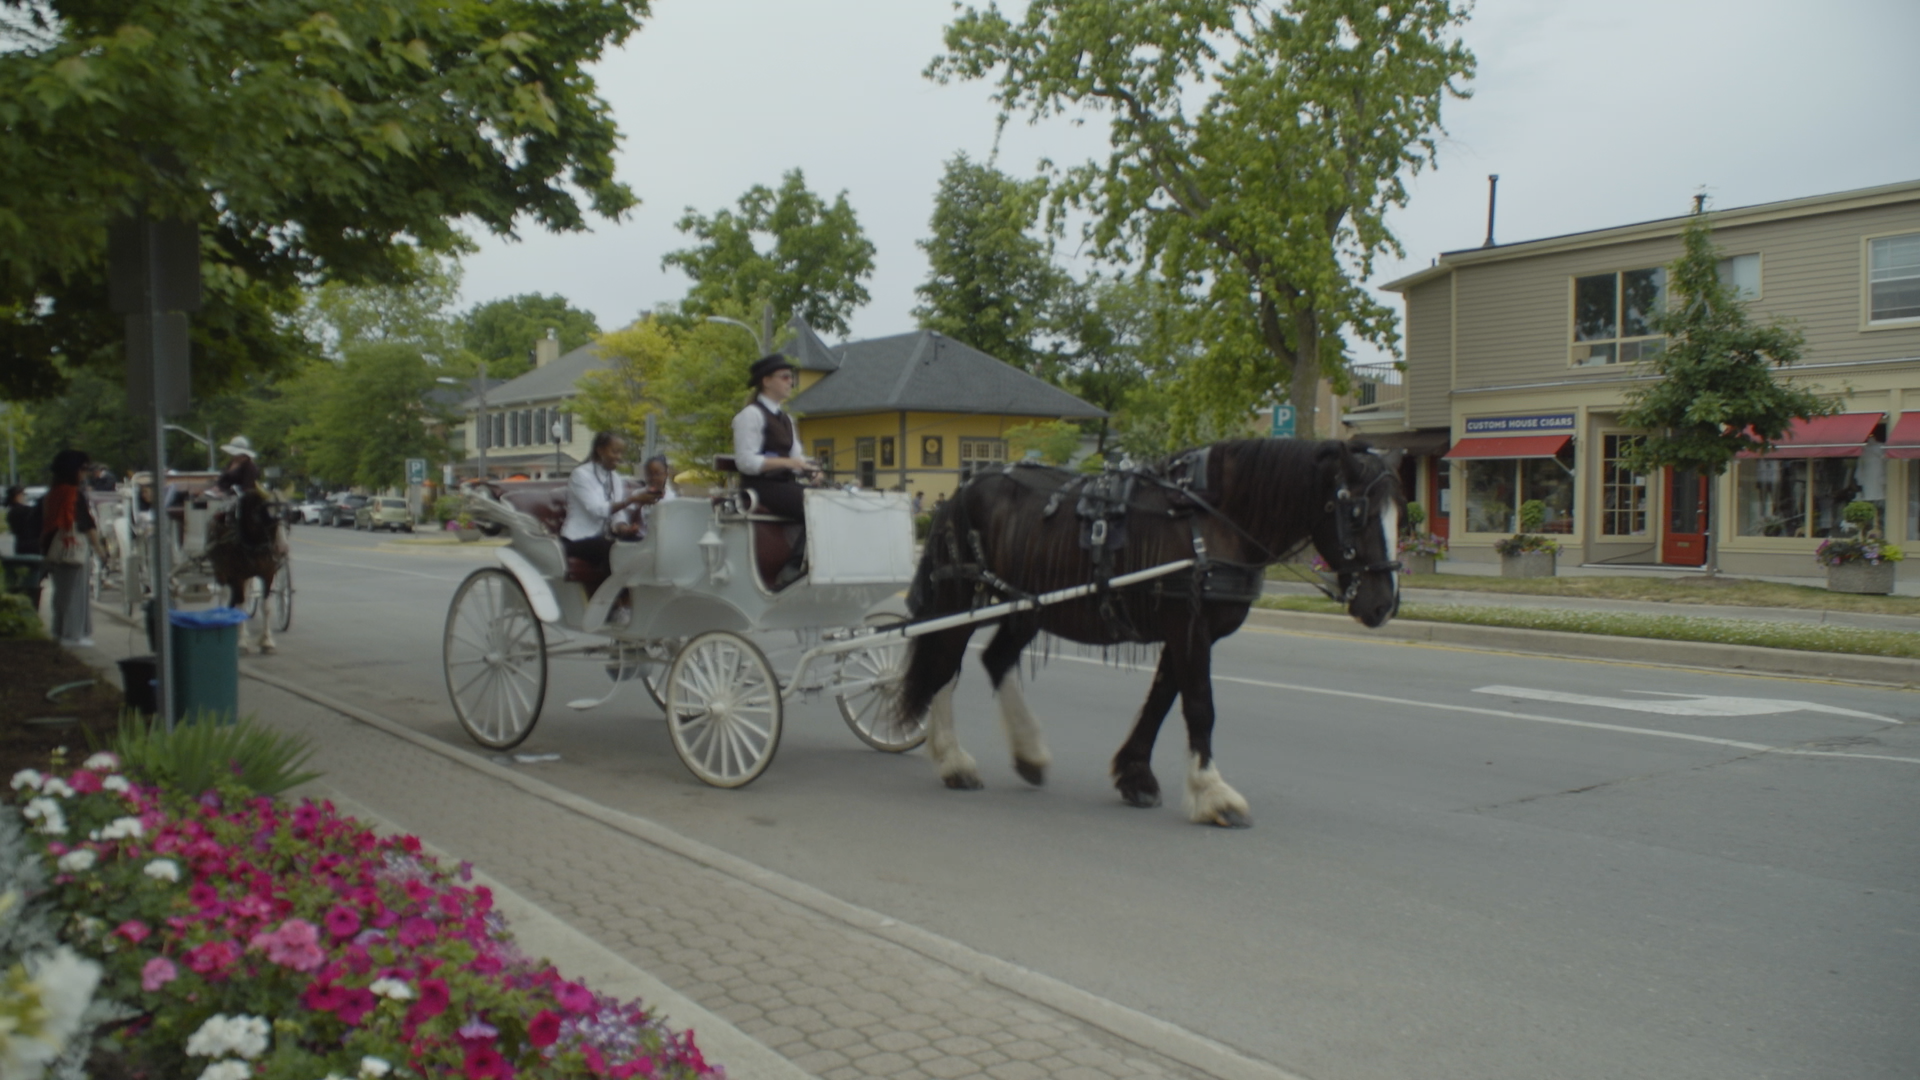 Niagara on the lake horse drawn carriage ride King St